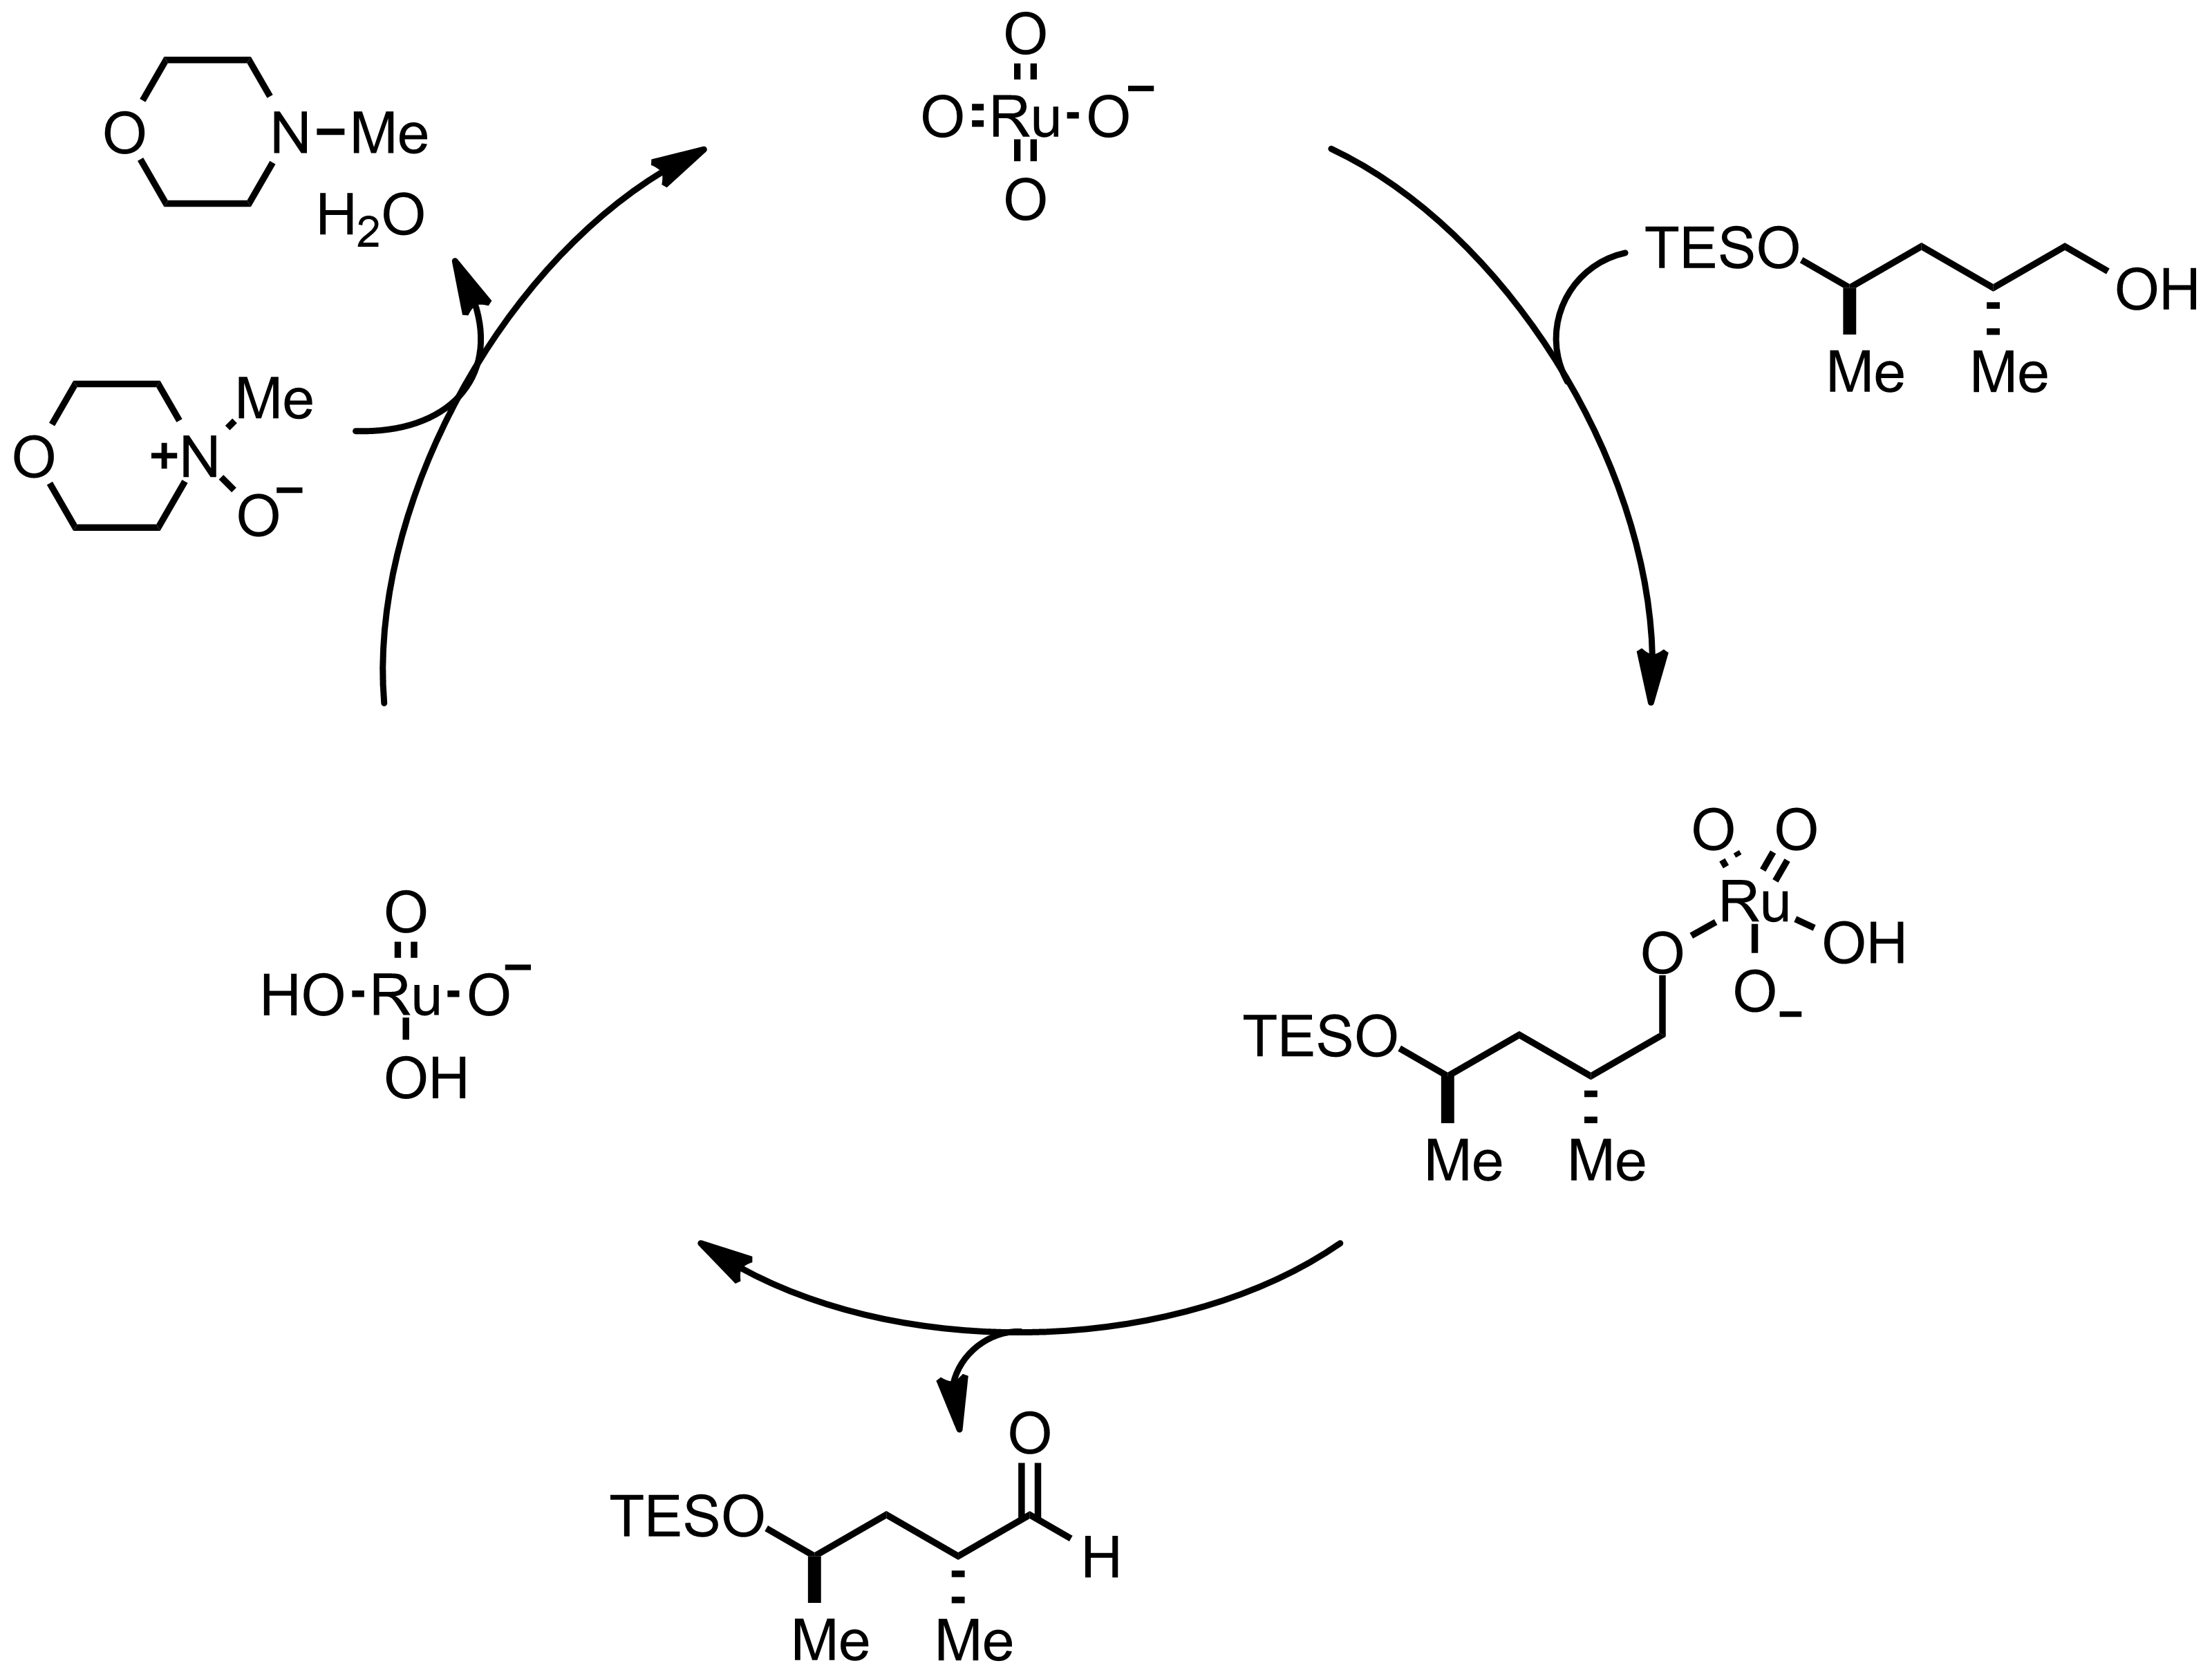 Mechanism of the Ley-Griffith Oxidation